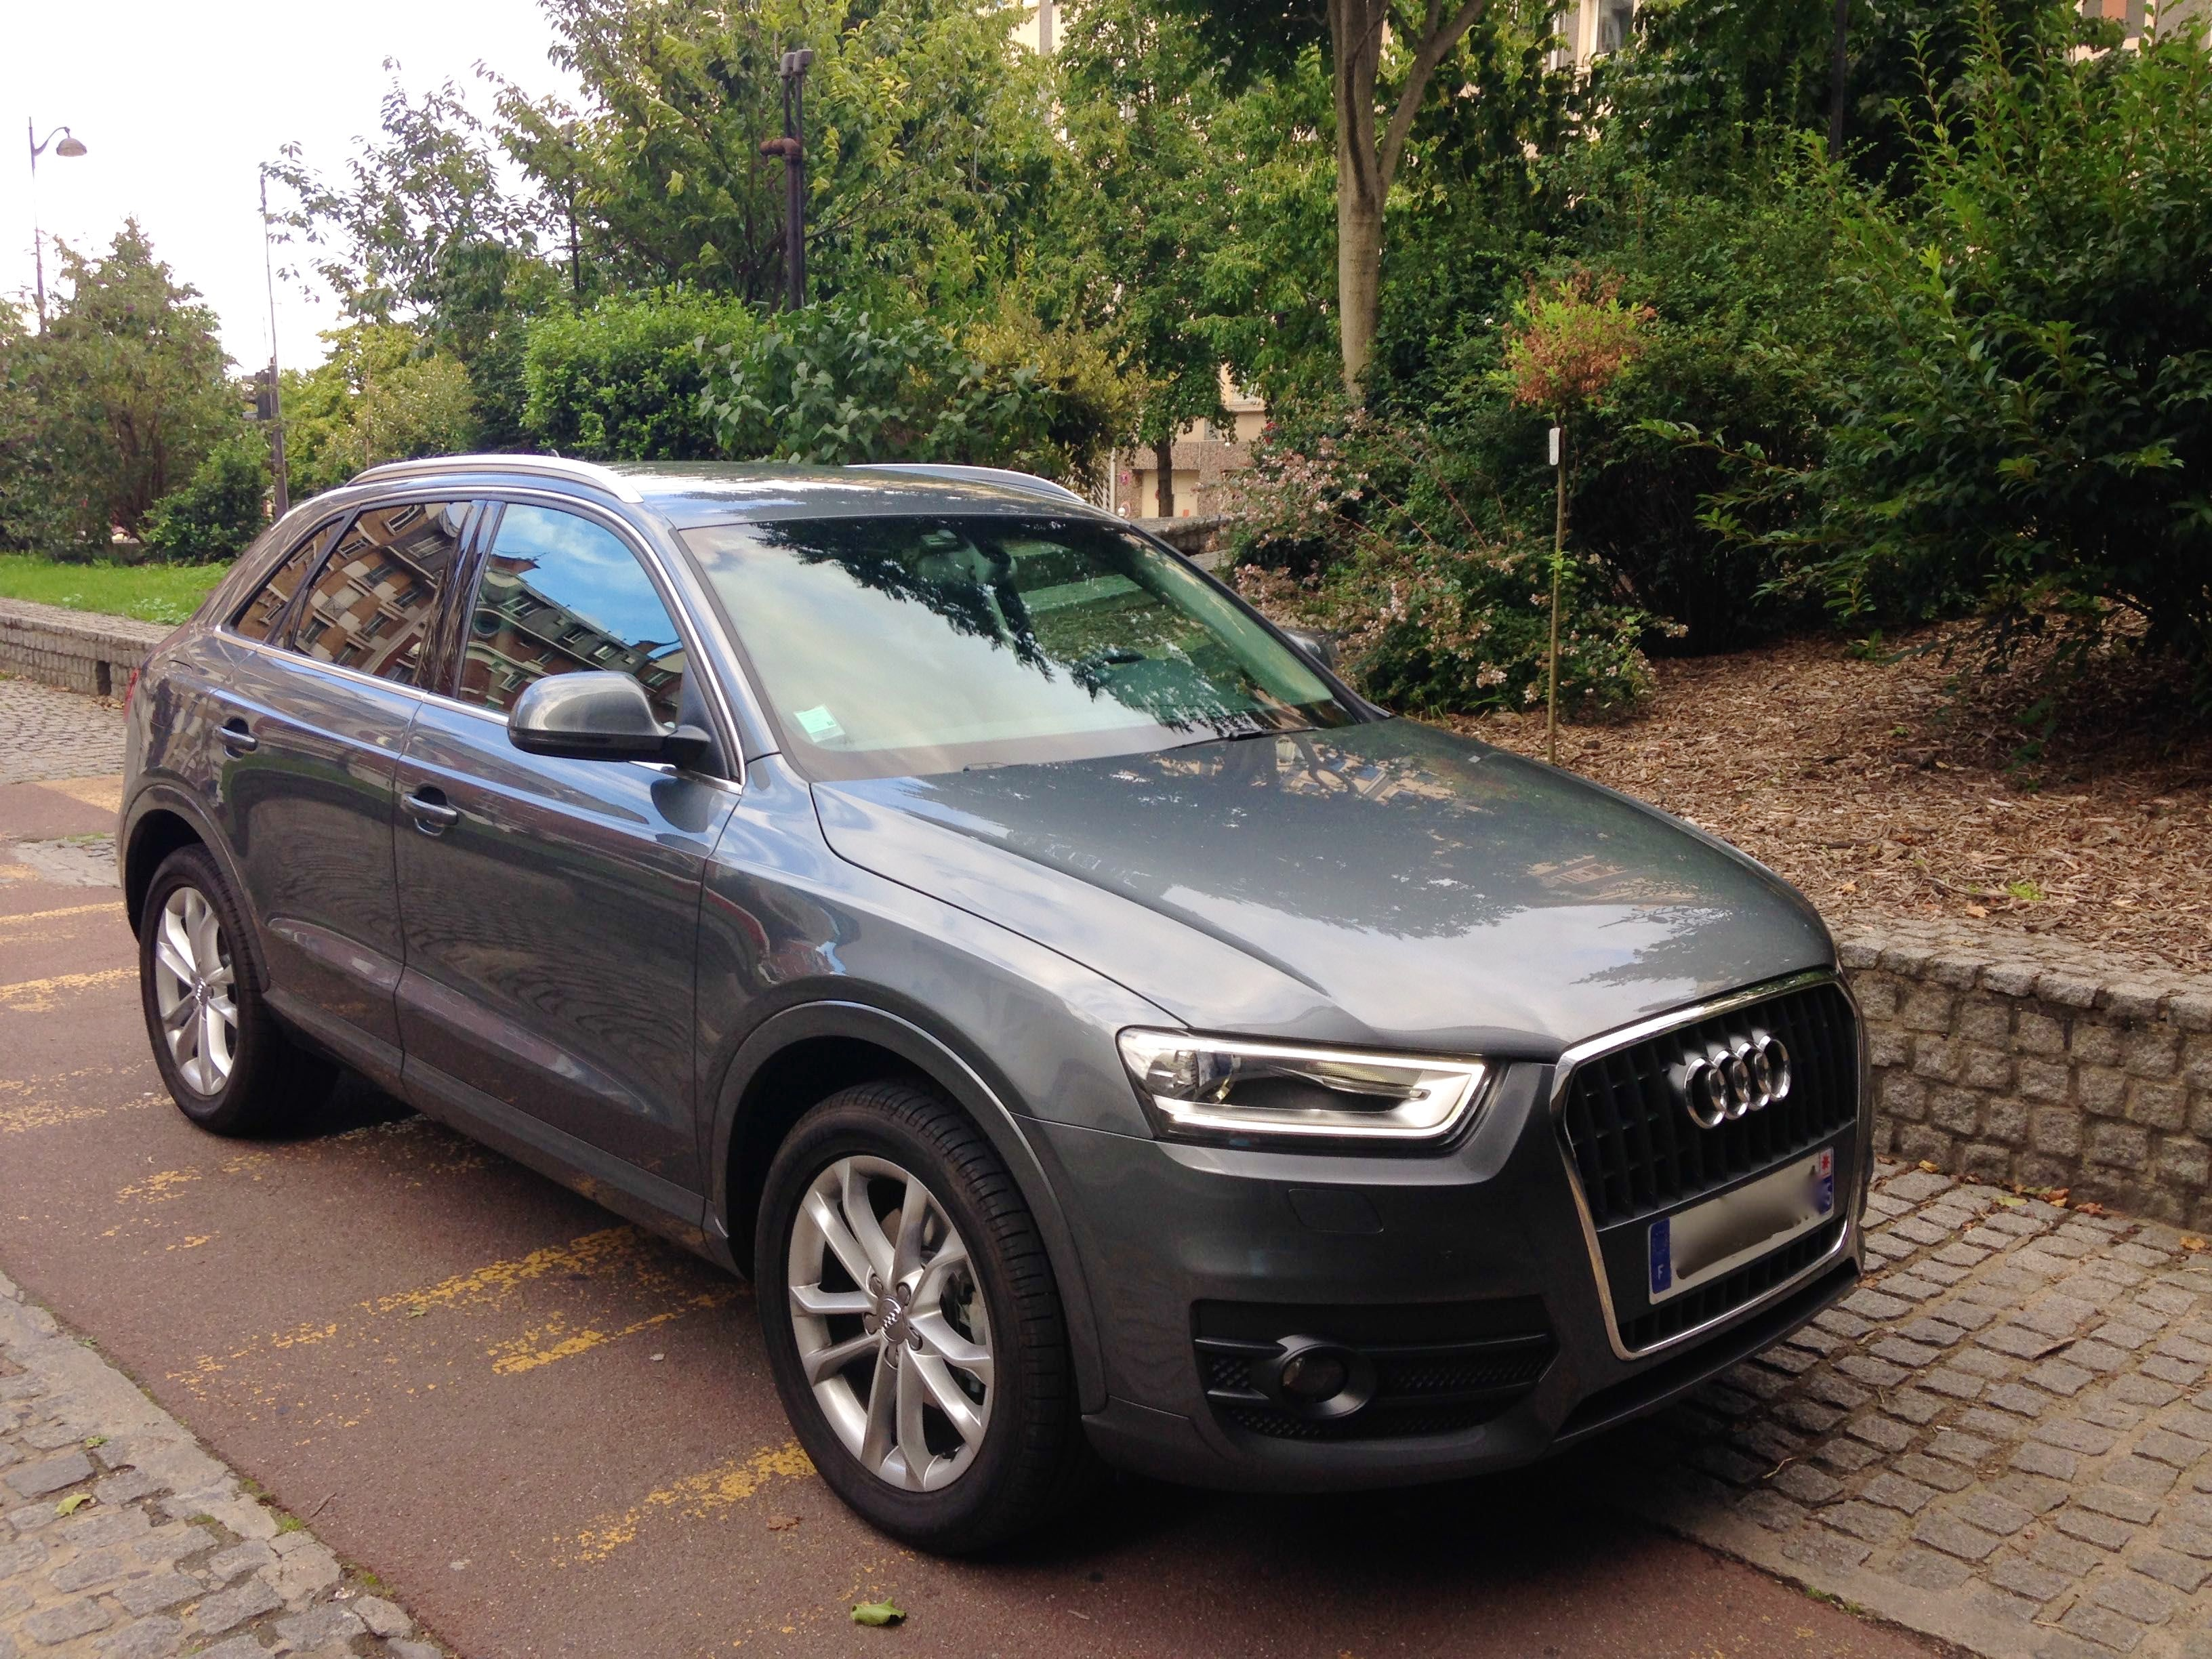 Audi Q3 Ambition luxe 2.0 TDI, 2013, Diesel